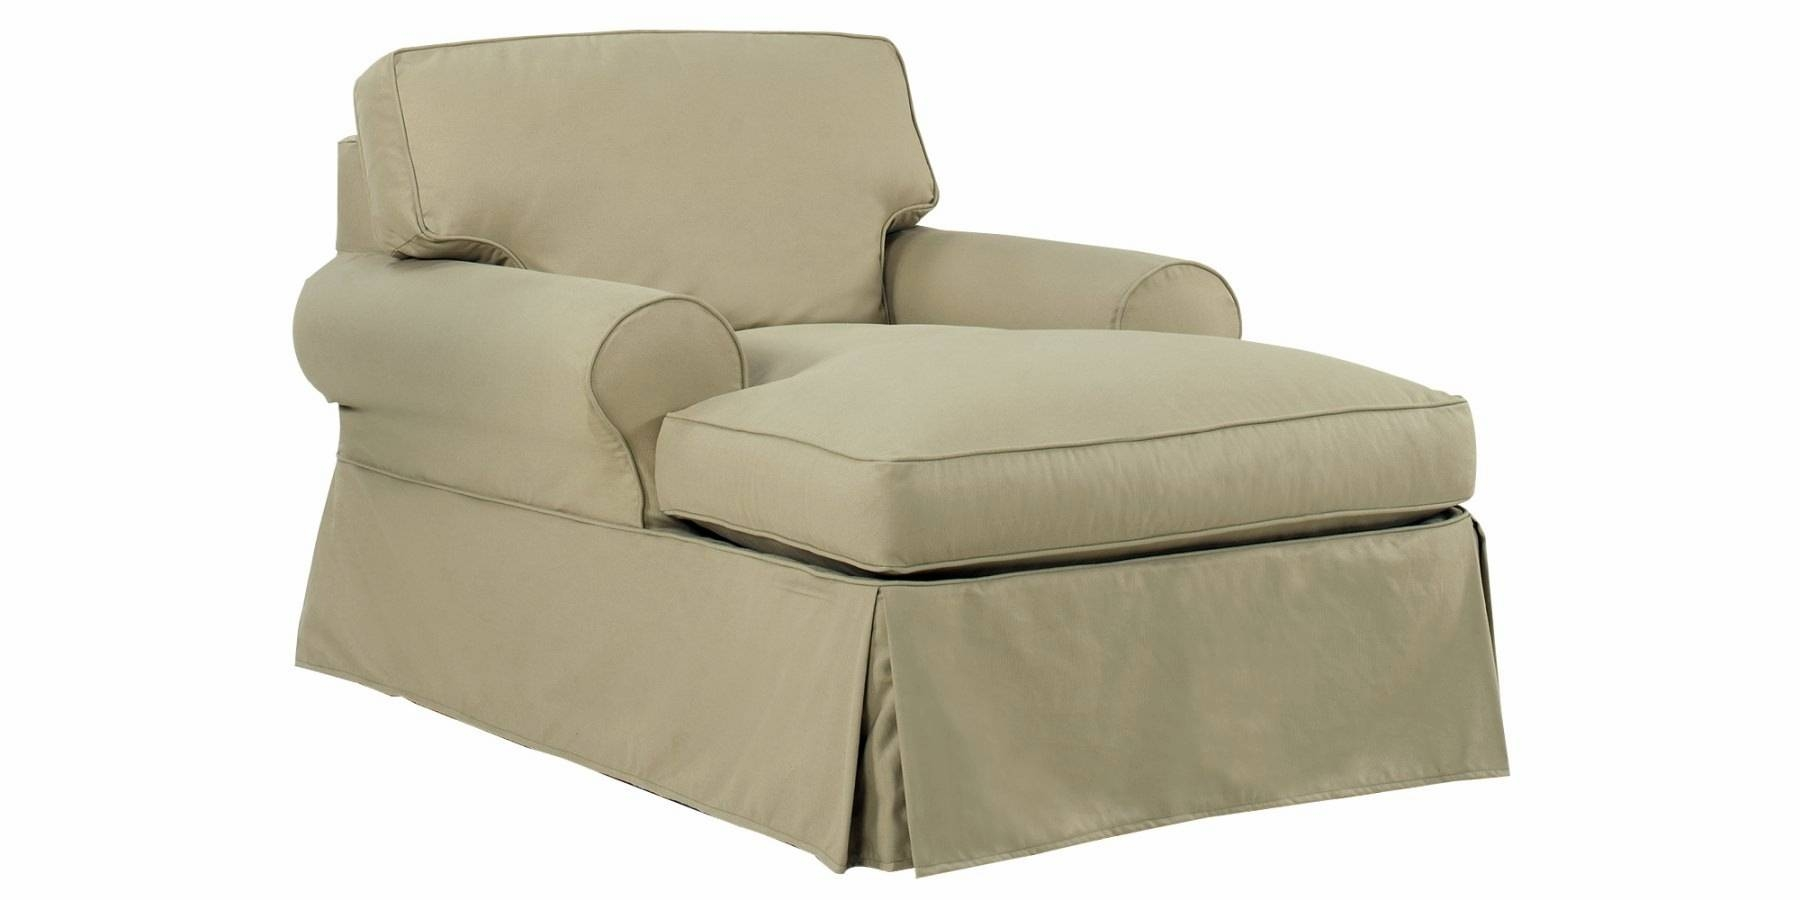 Slip Covers Chair And Quality Interiors | Sofa Slipcover | Chair within Sofa and Chair Covers (Image 25 of 30)